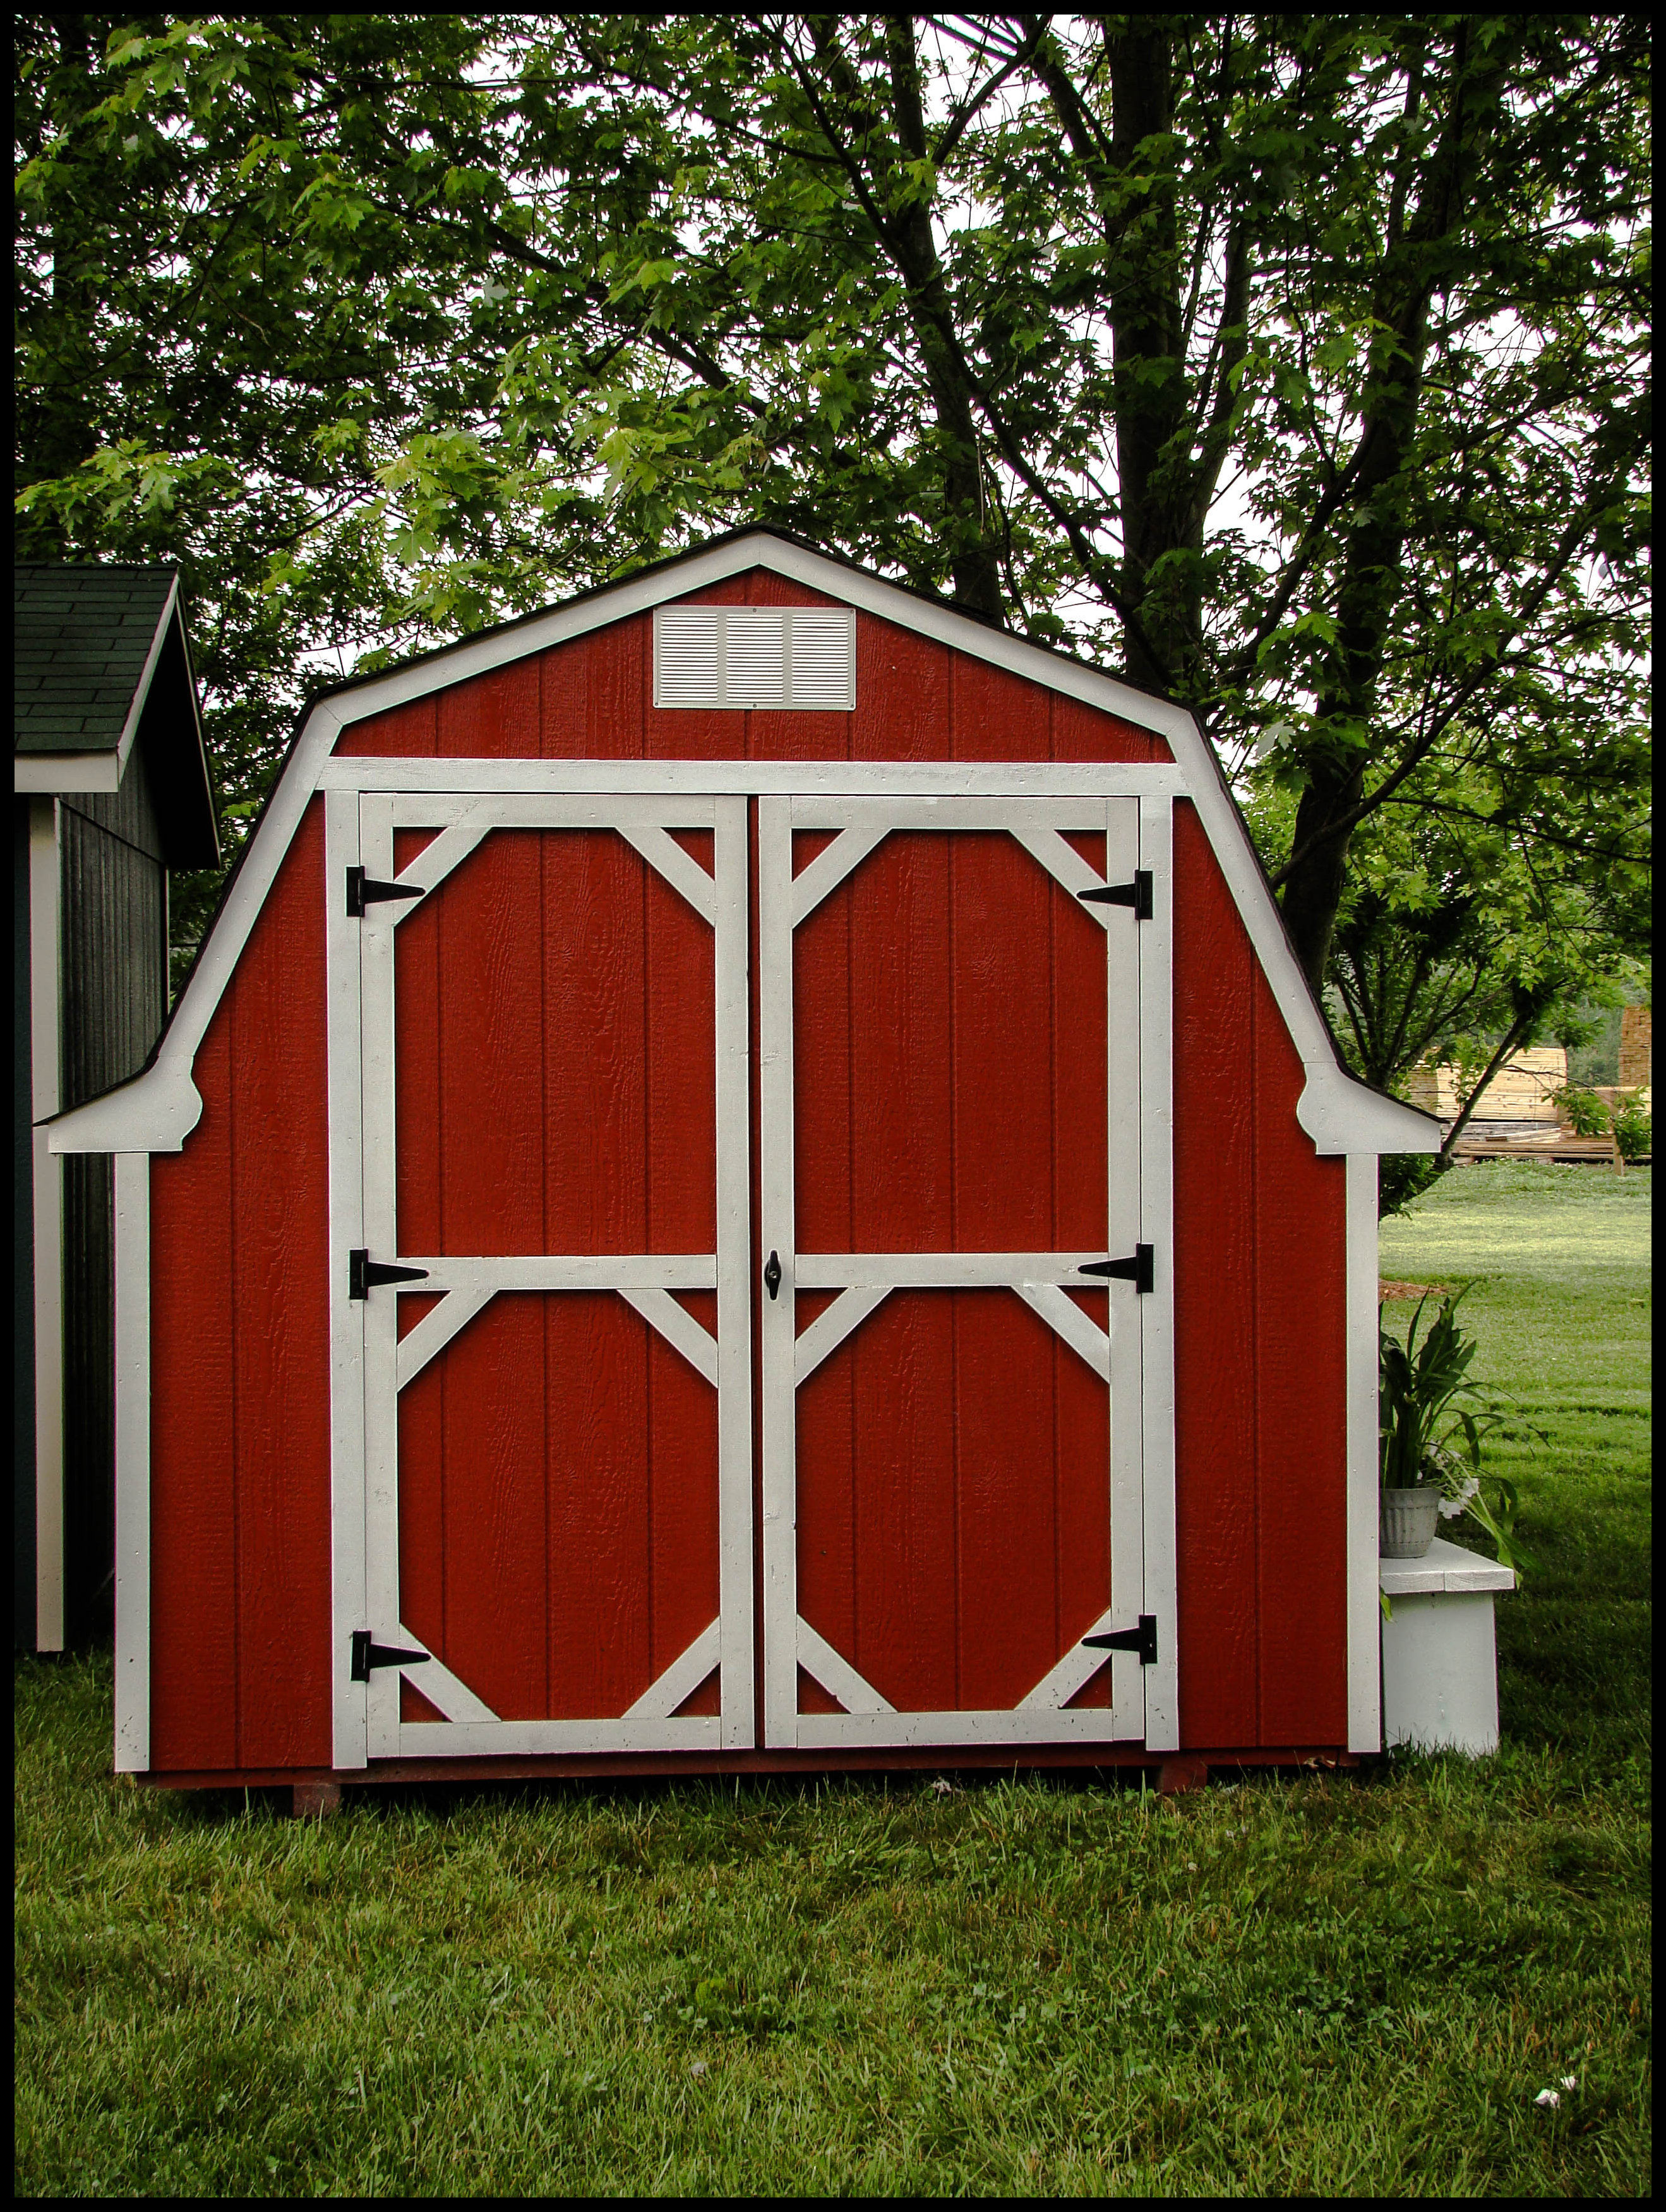 sheds red of best and in construction barn indiana barns lebanon